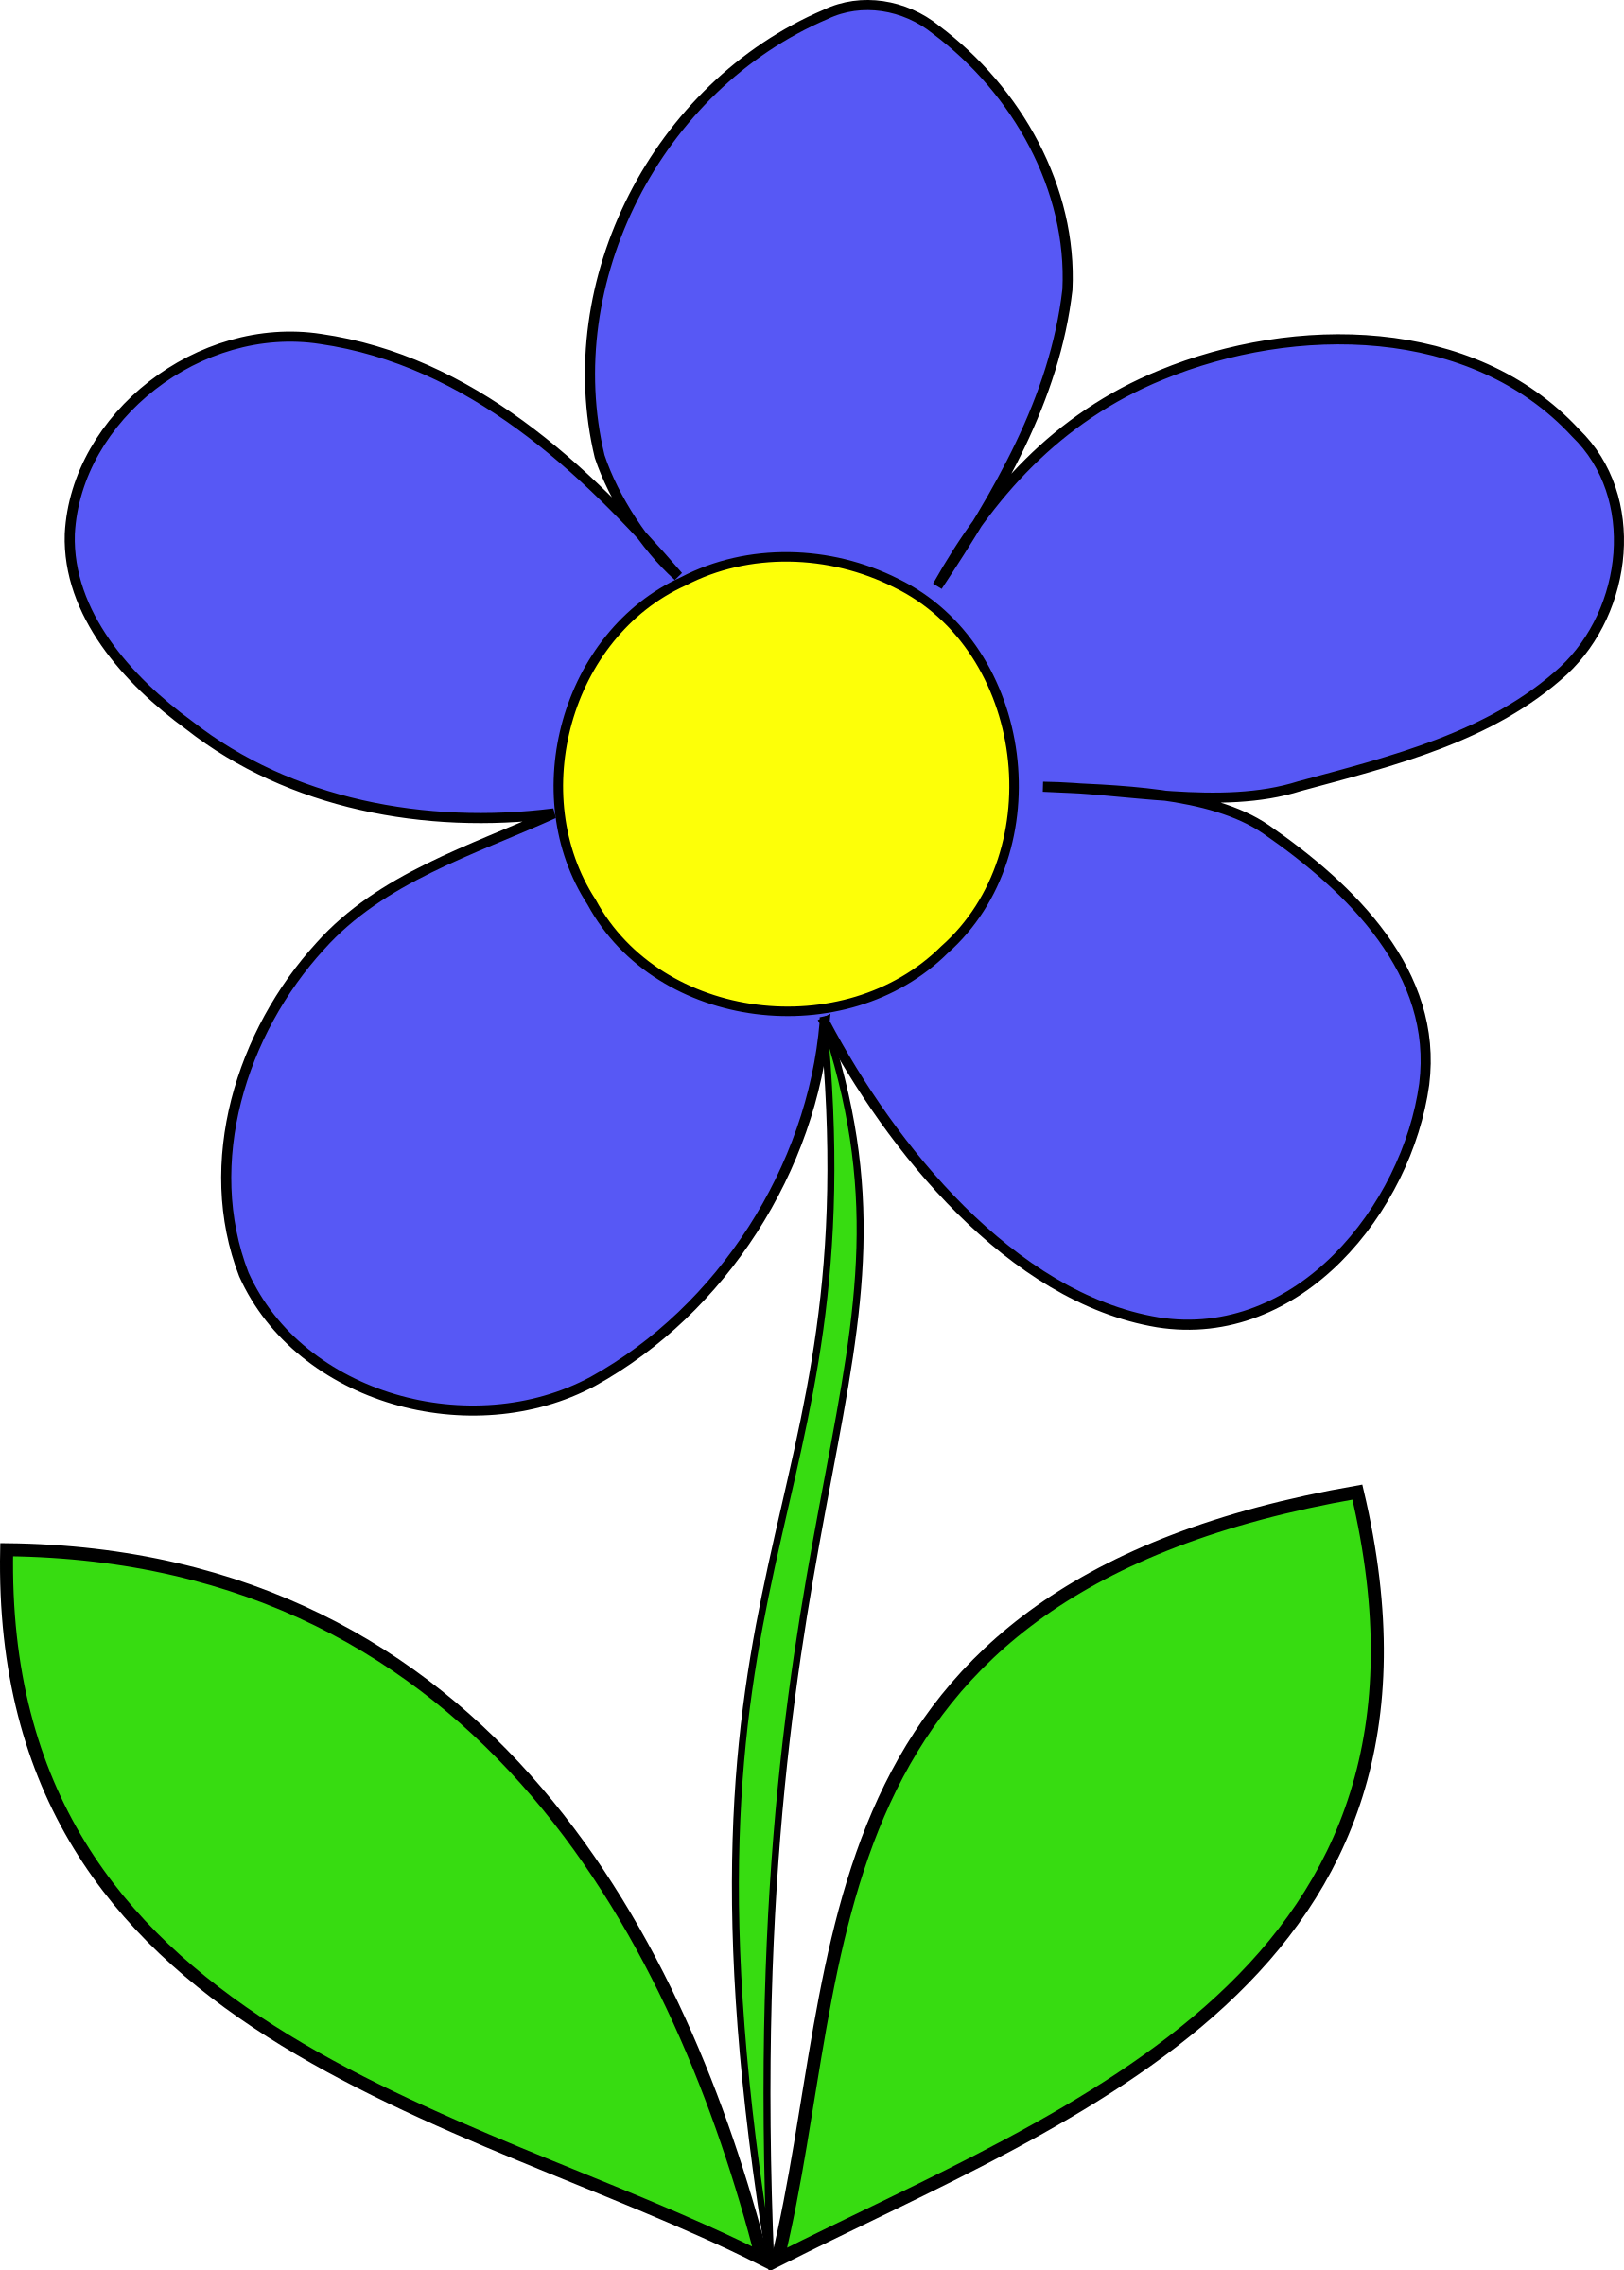 Kids clipart flower. Free at getdrawings com